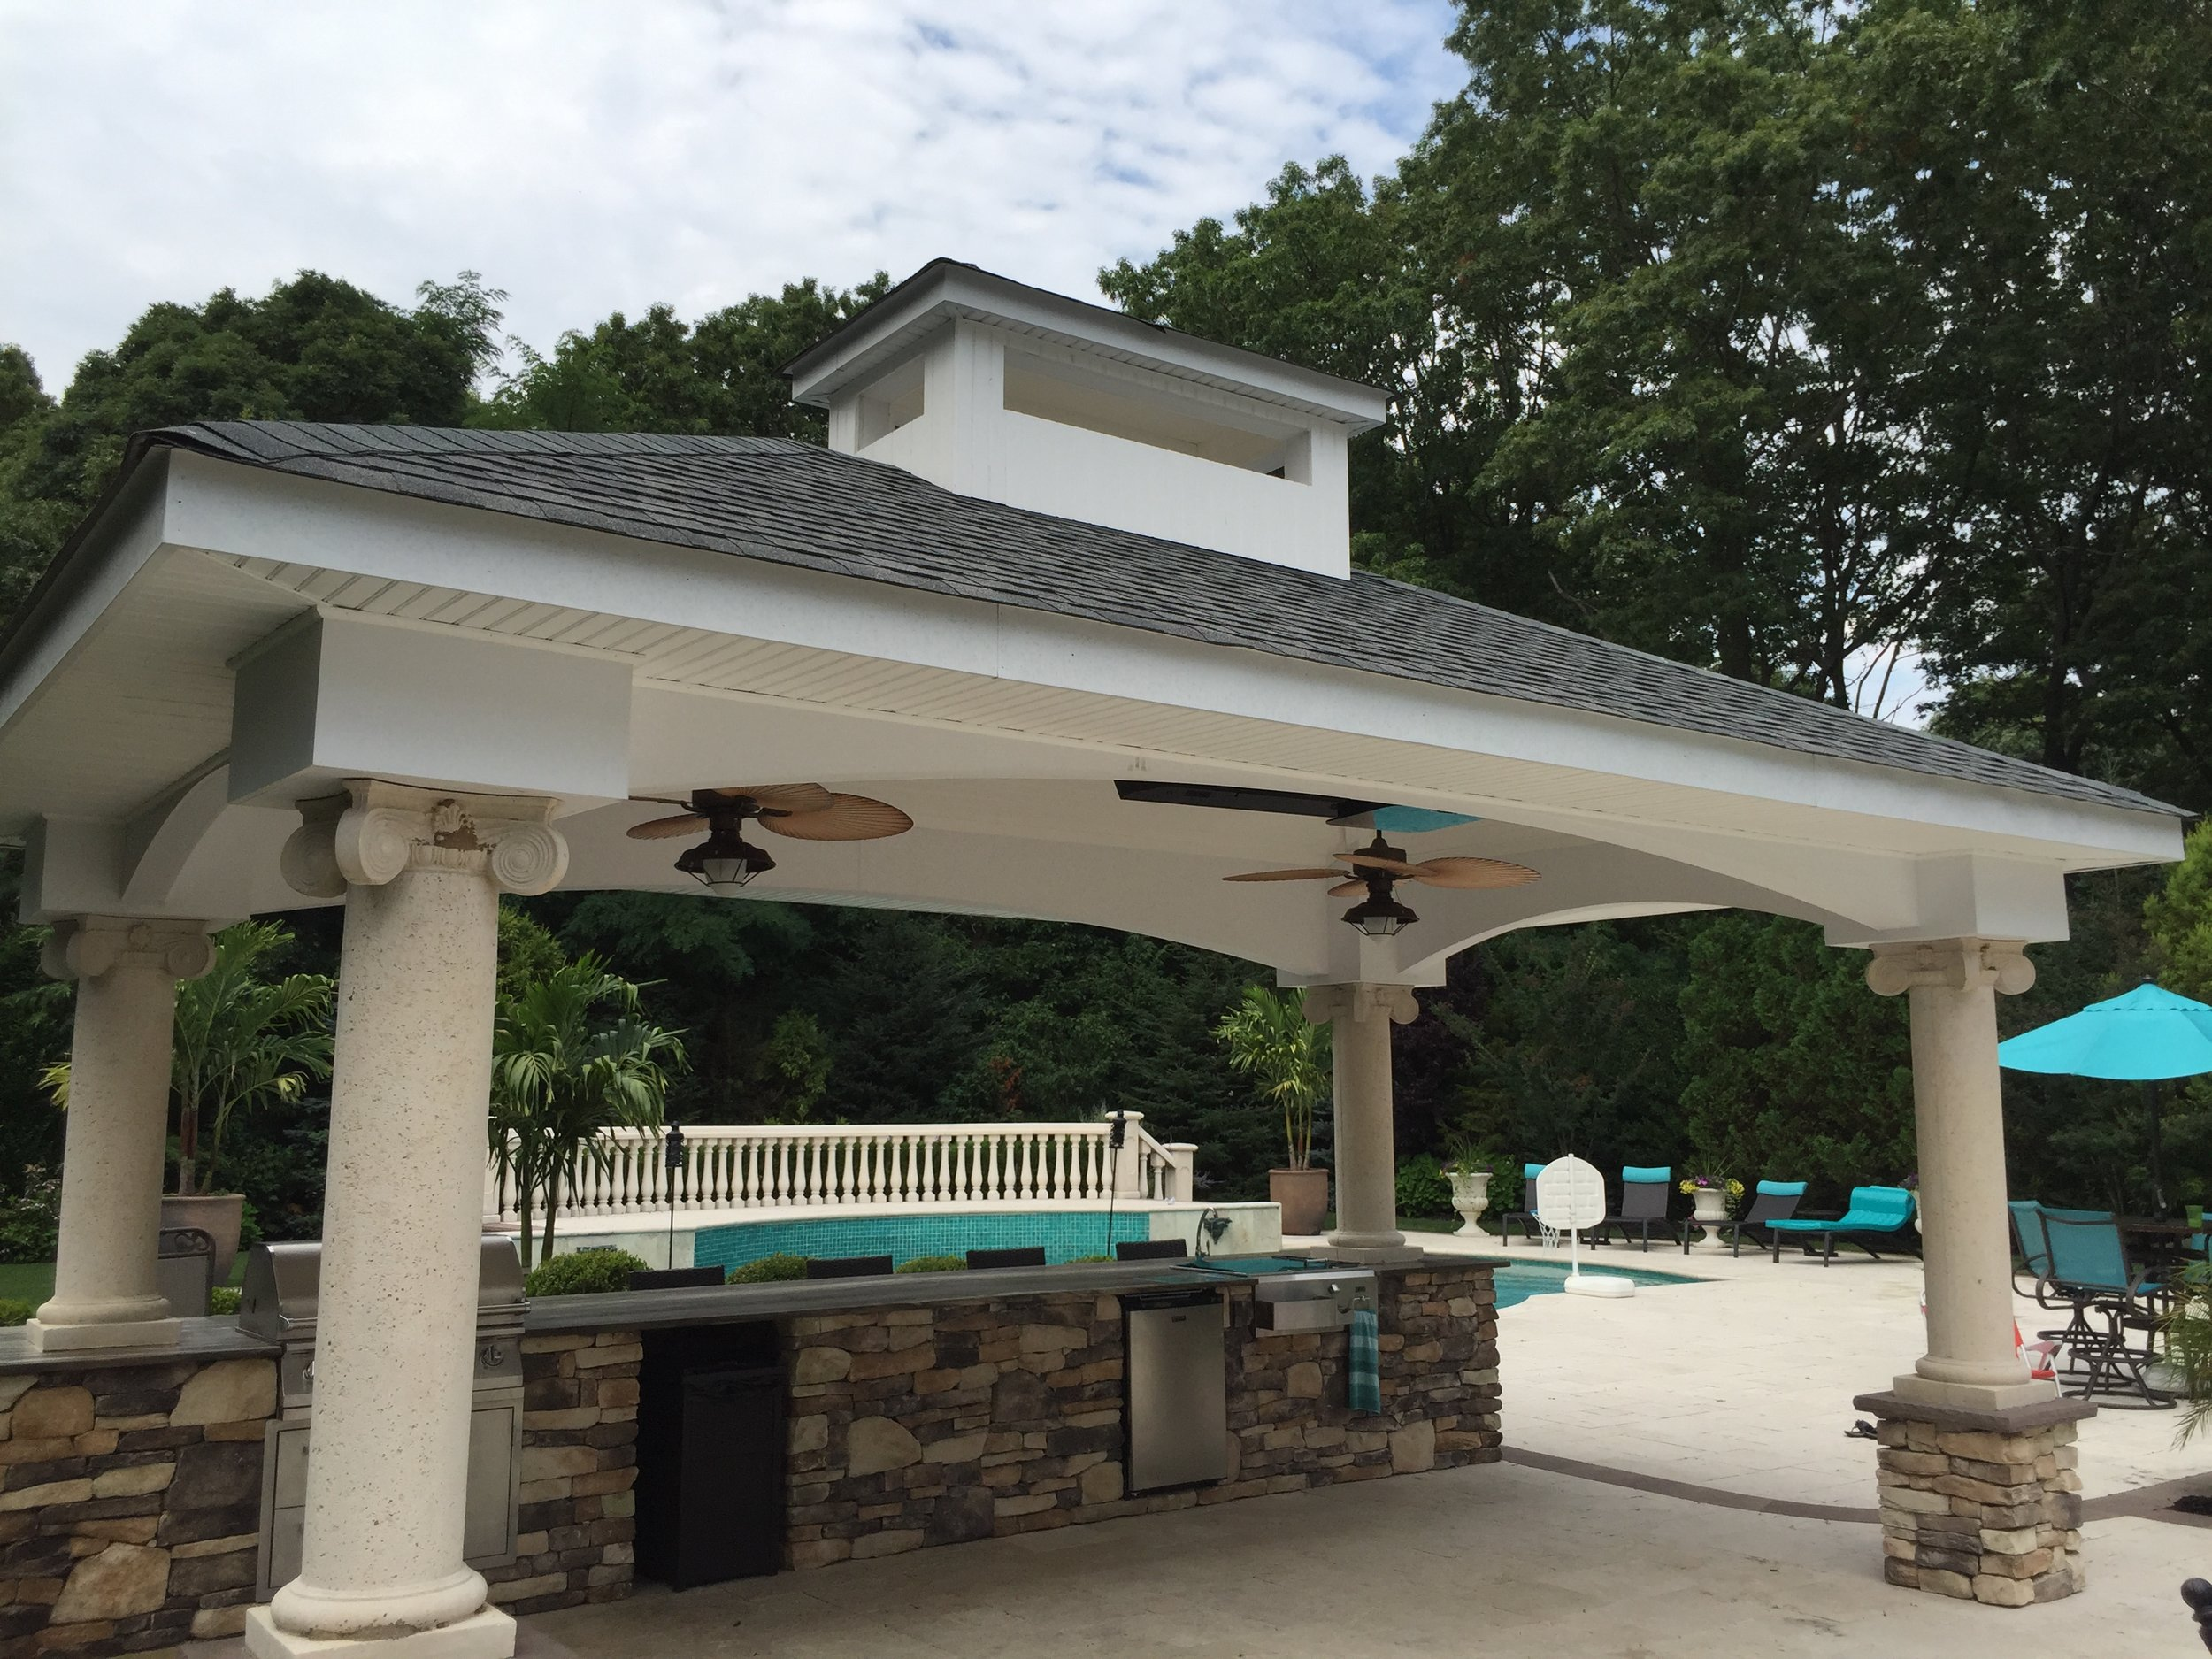 Top outdoor kitchen pool house design company in Long Island, NY